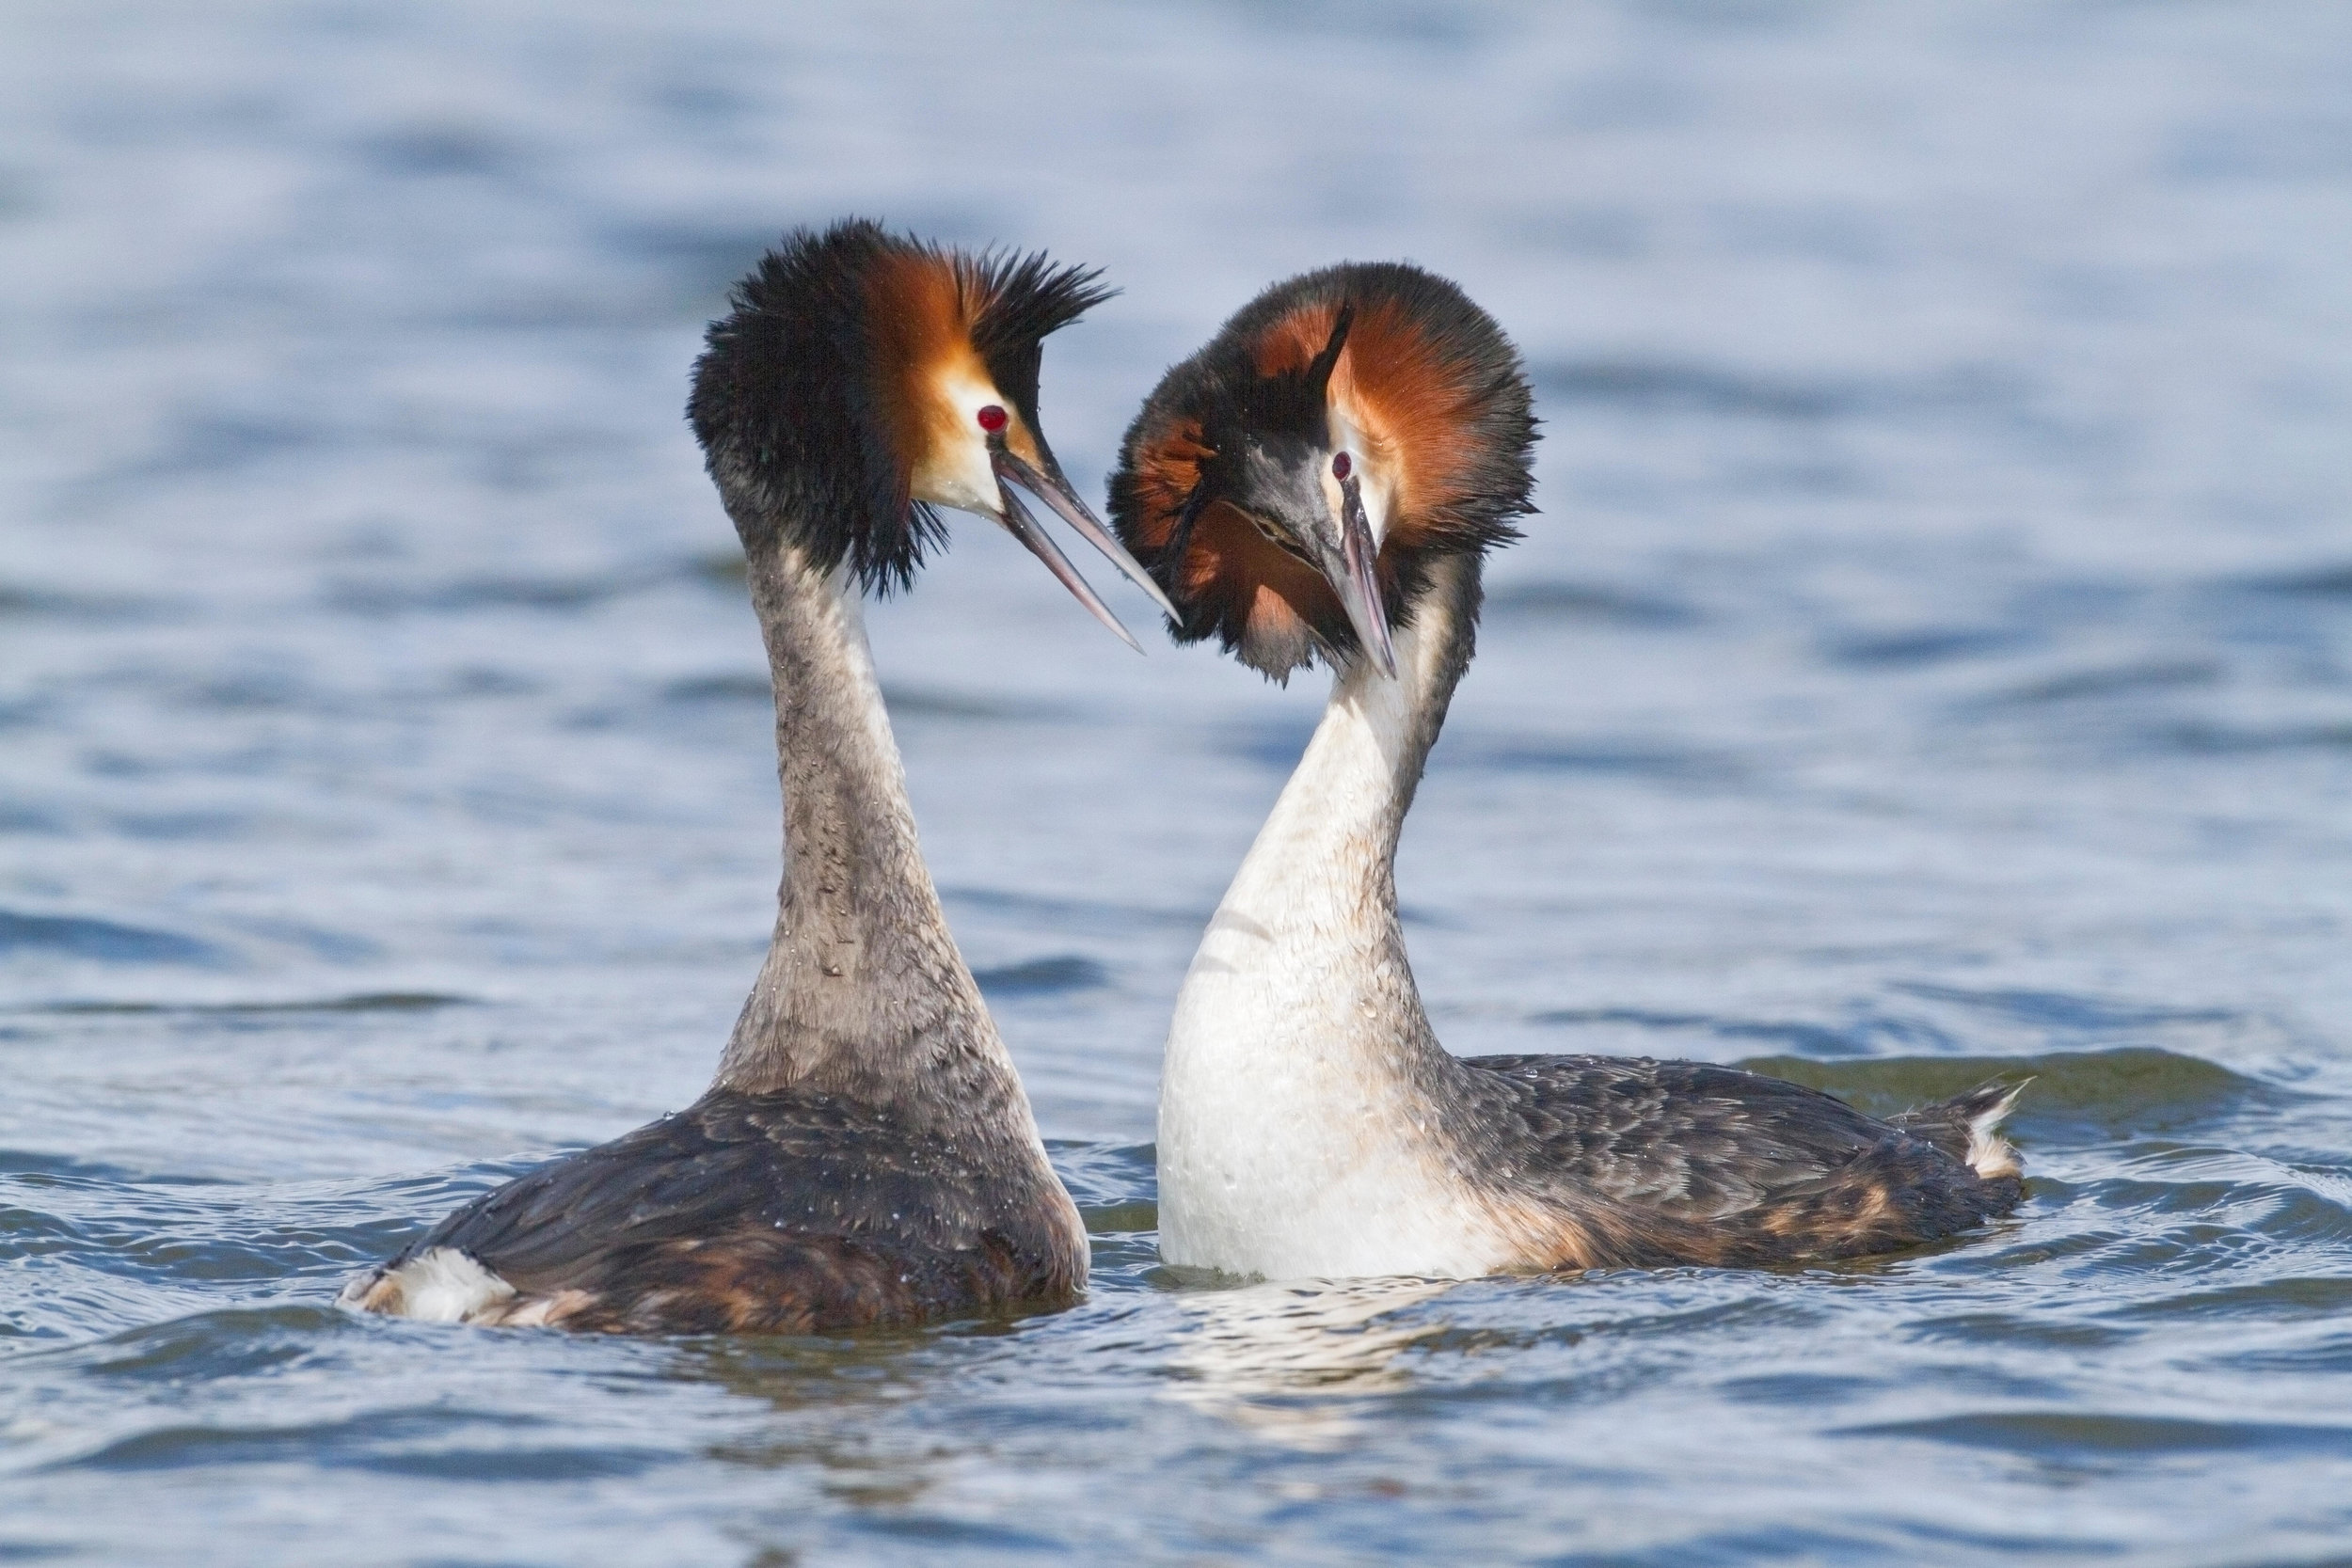 Displaying Great Crested Grebes